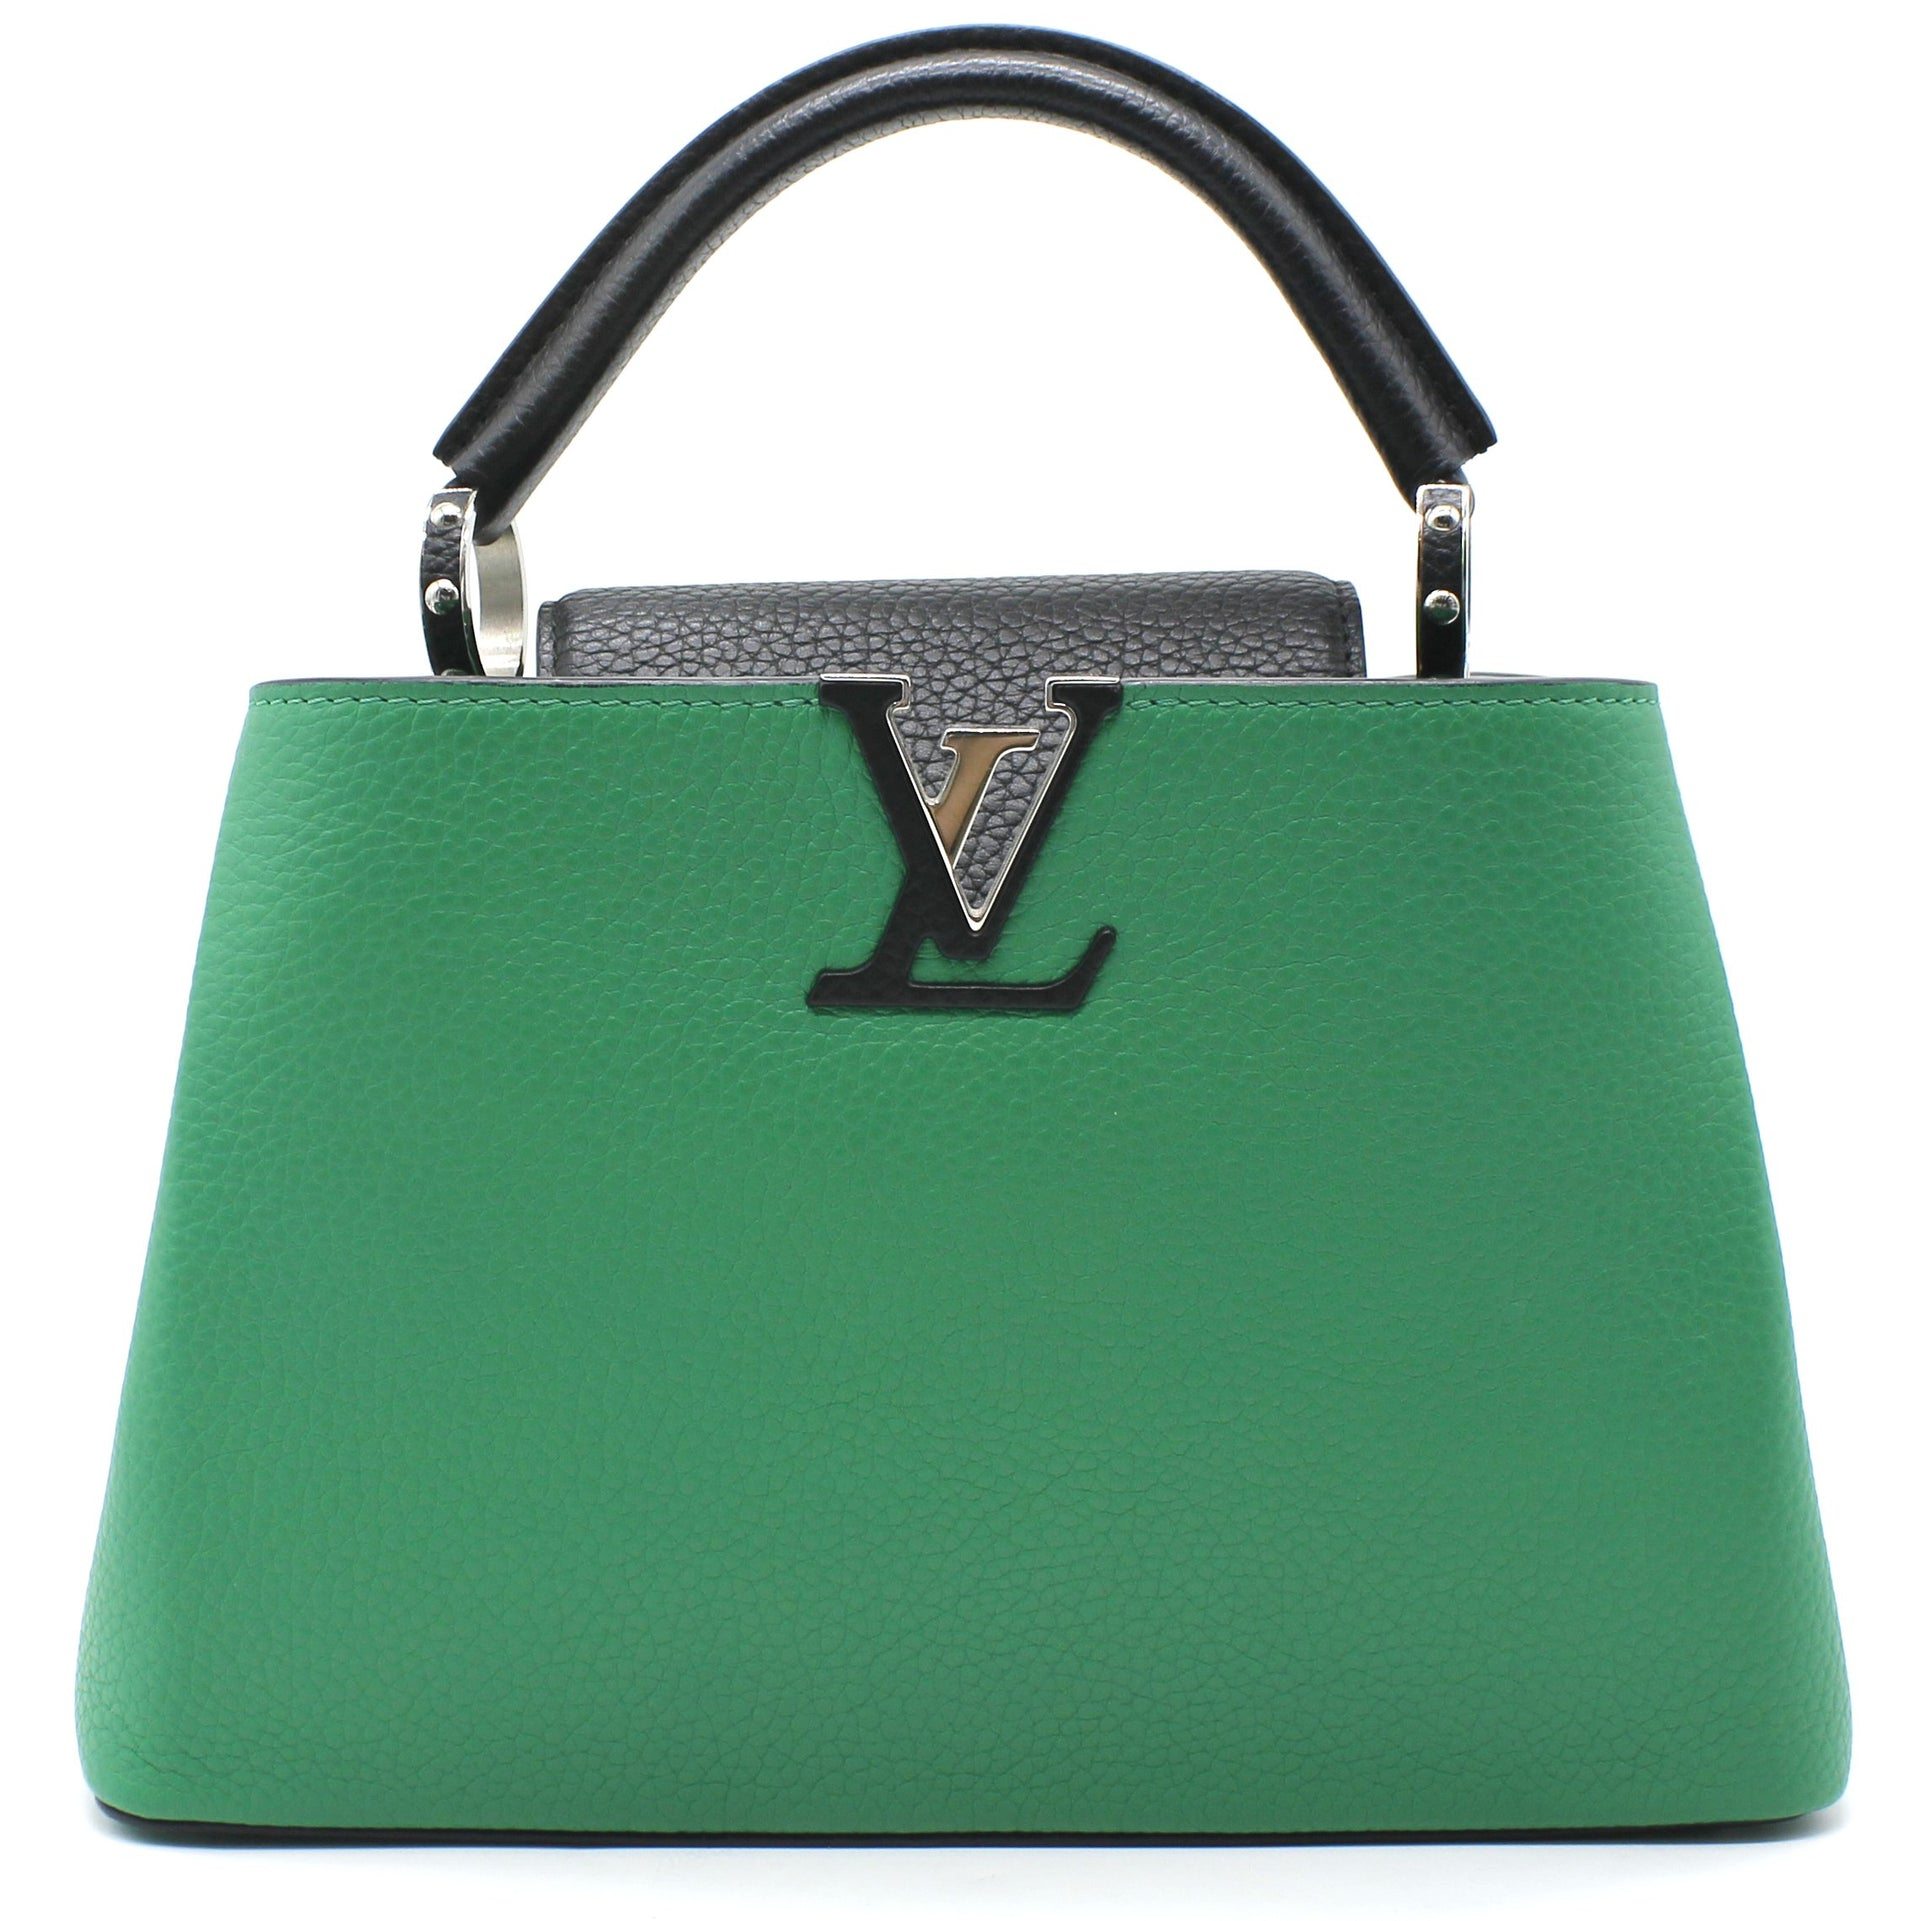 Louis Vuitton Taurillon Capucines BB Green and Black